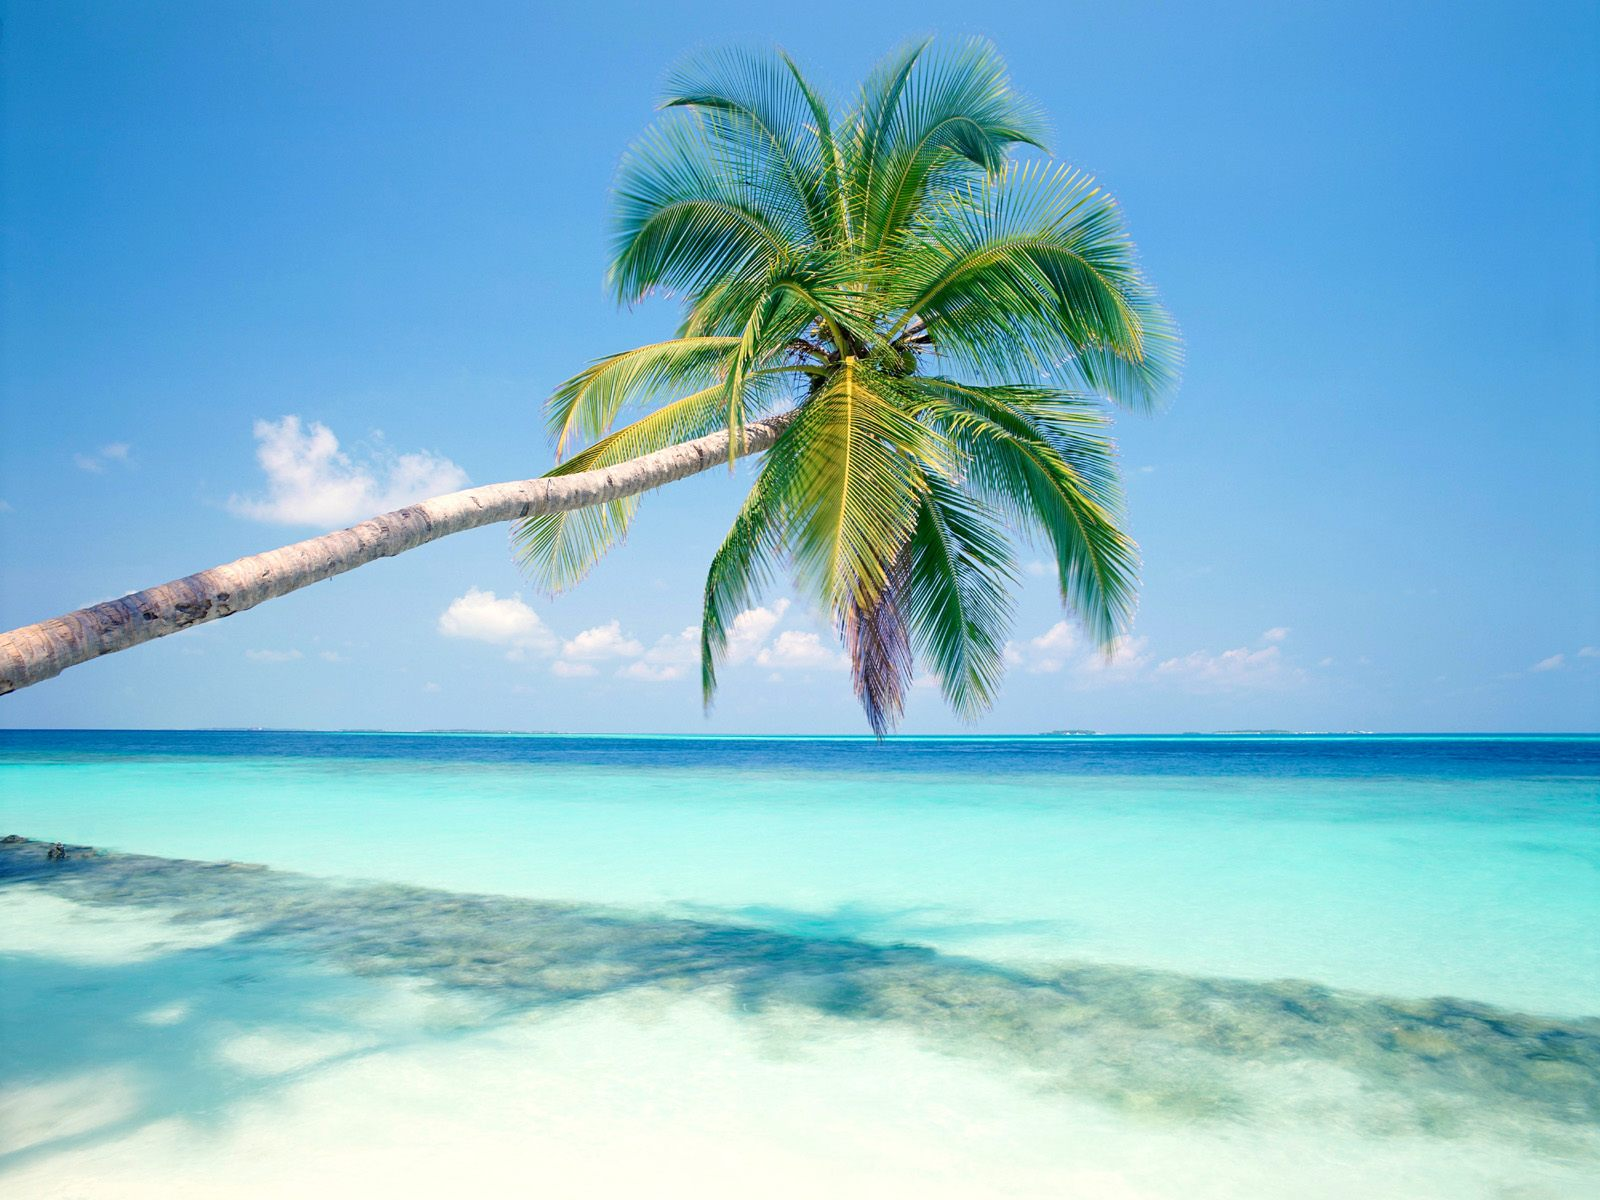 Tropical Island Wallpapers HD Wallpapers 1600x1200